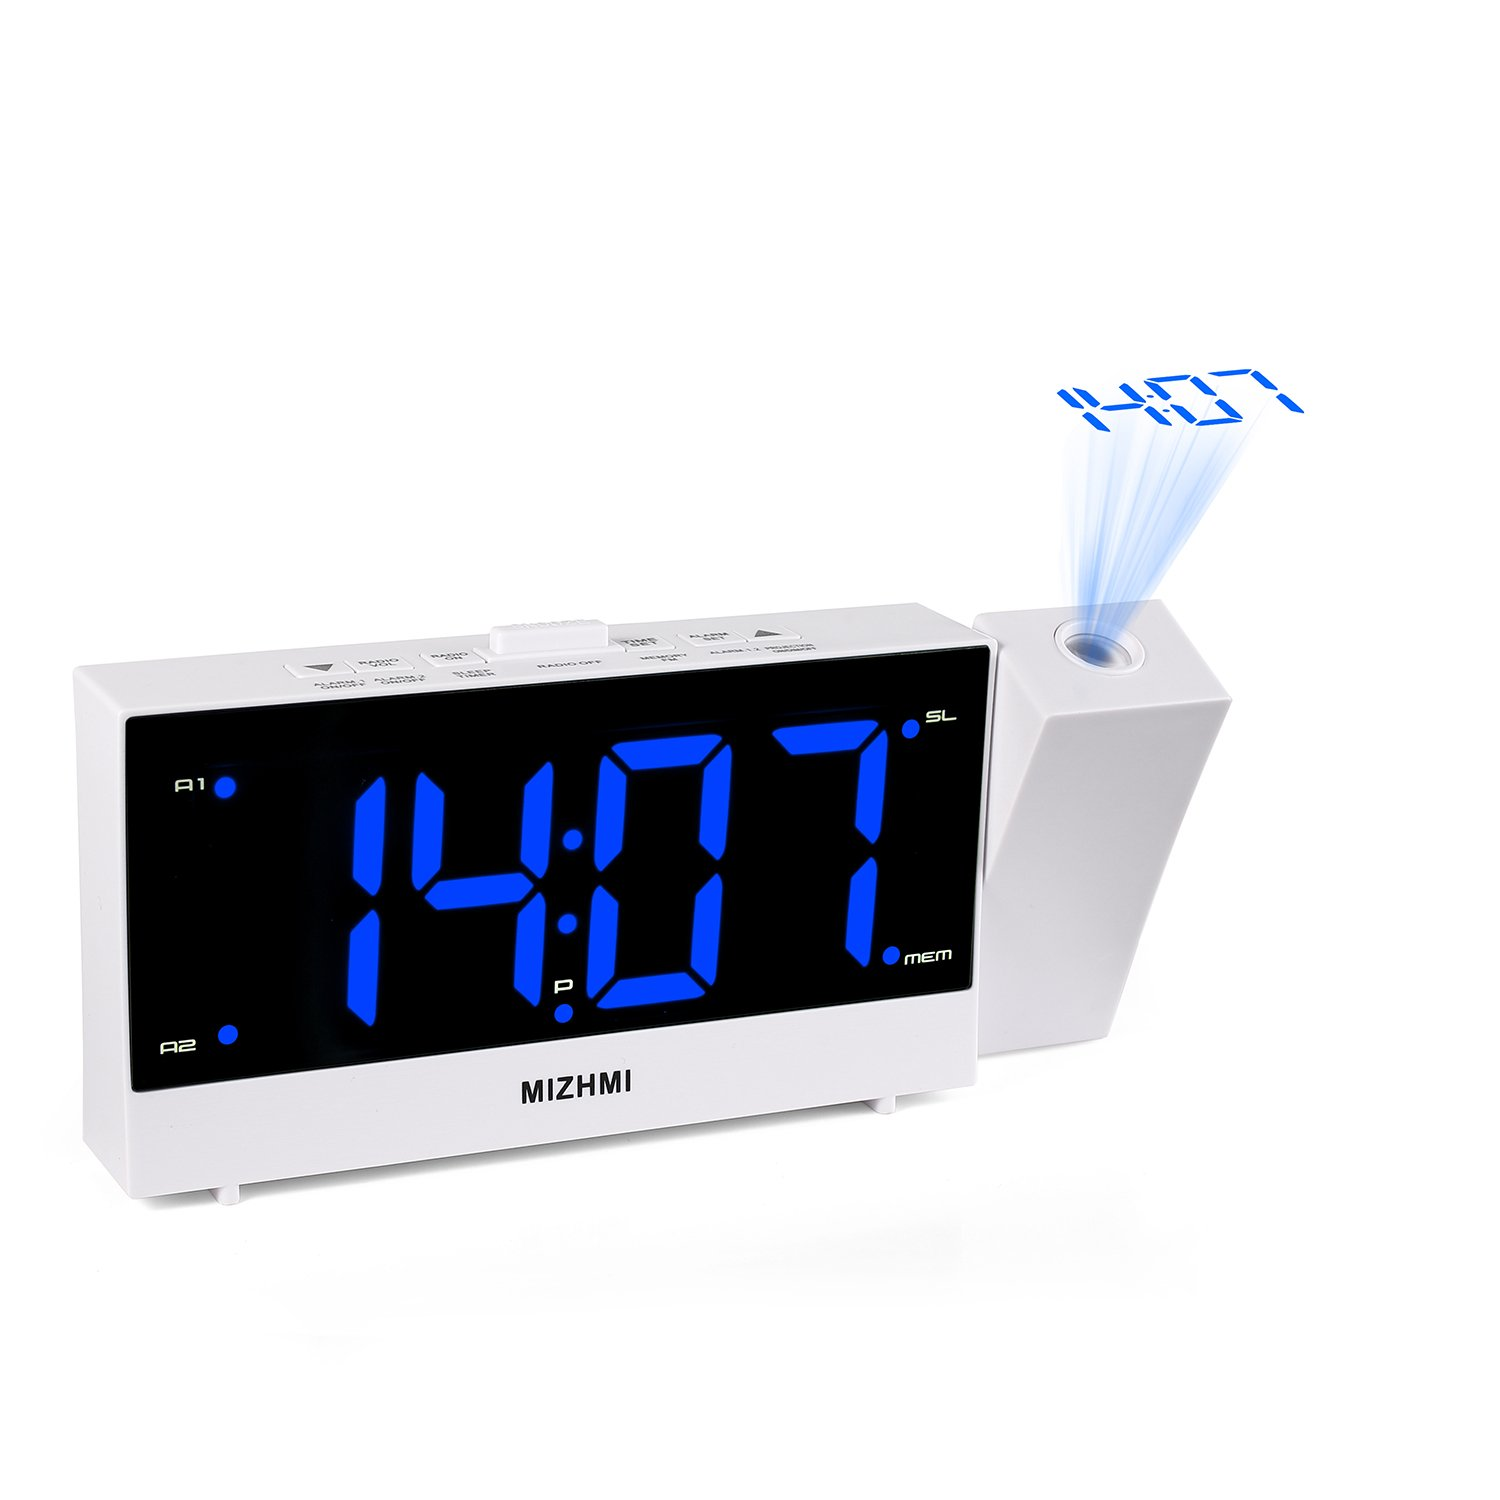 MIZHMI Projection Alarm Clock, Dual Alarms with FM Radio USB Charging Dimmer 5.5